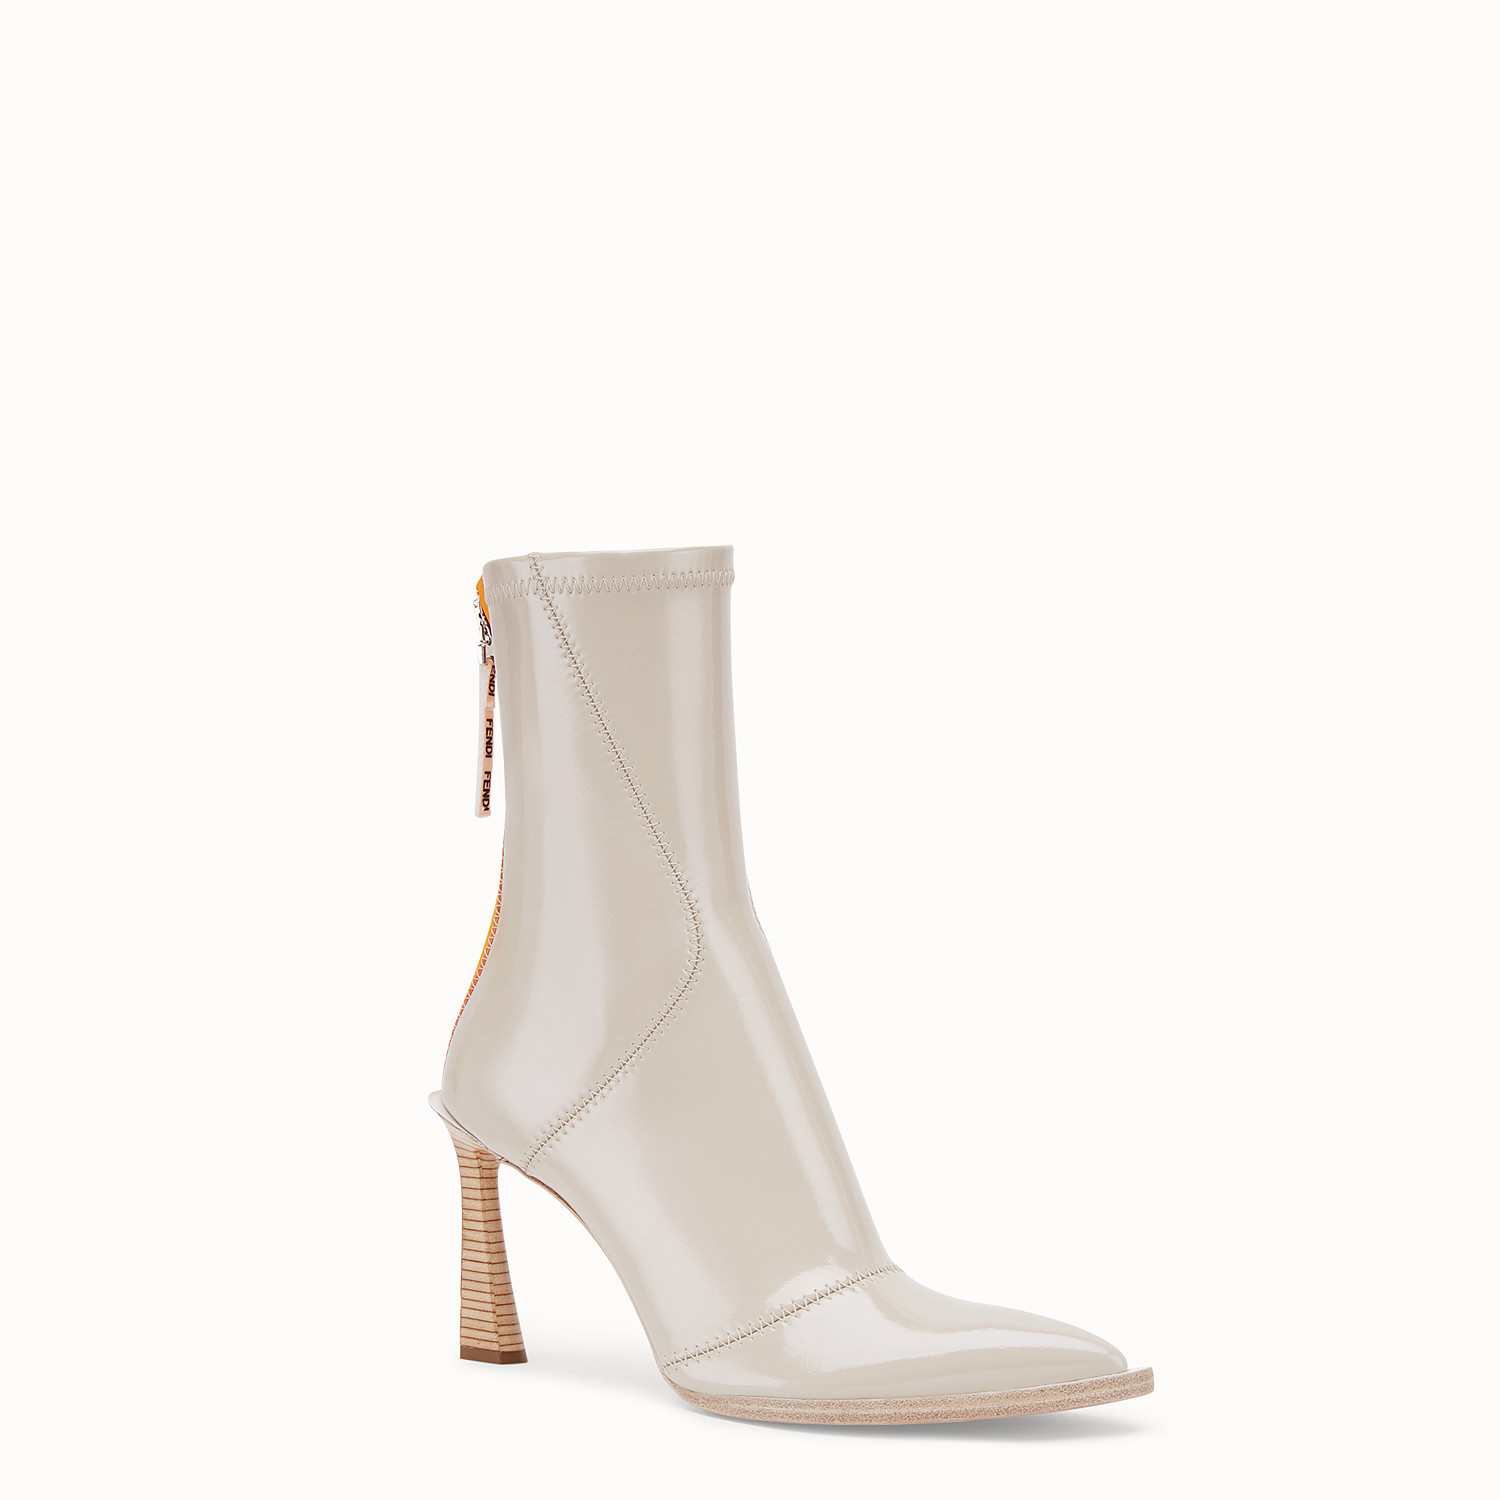 Glossy gray neoprene ankle boots - ANKLE BOOTS | Fendi